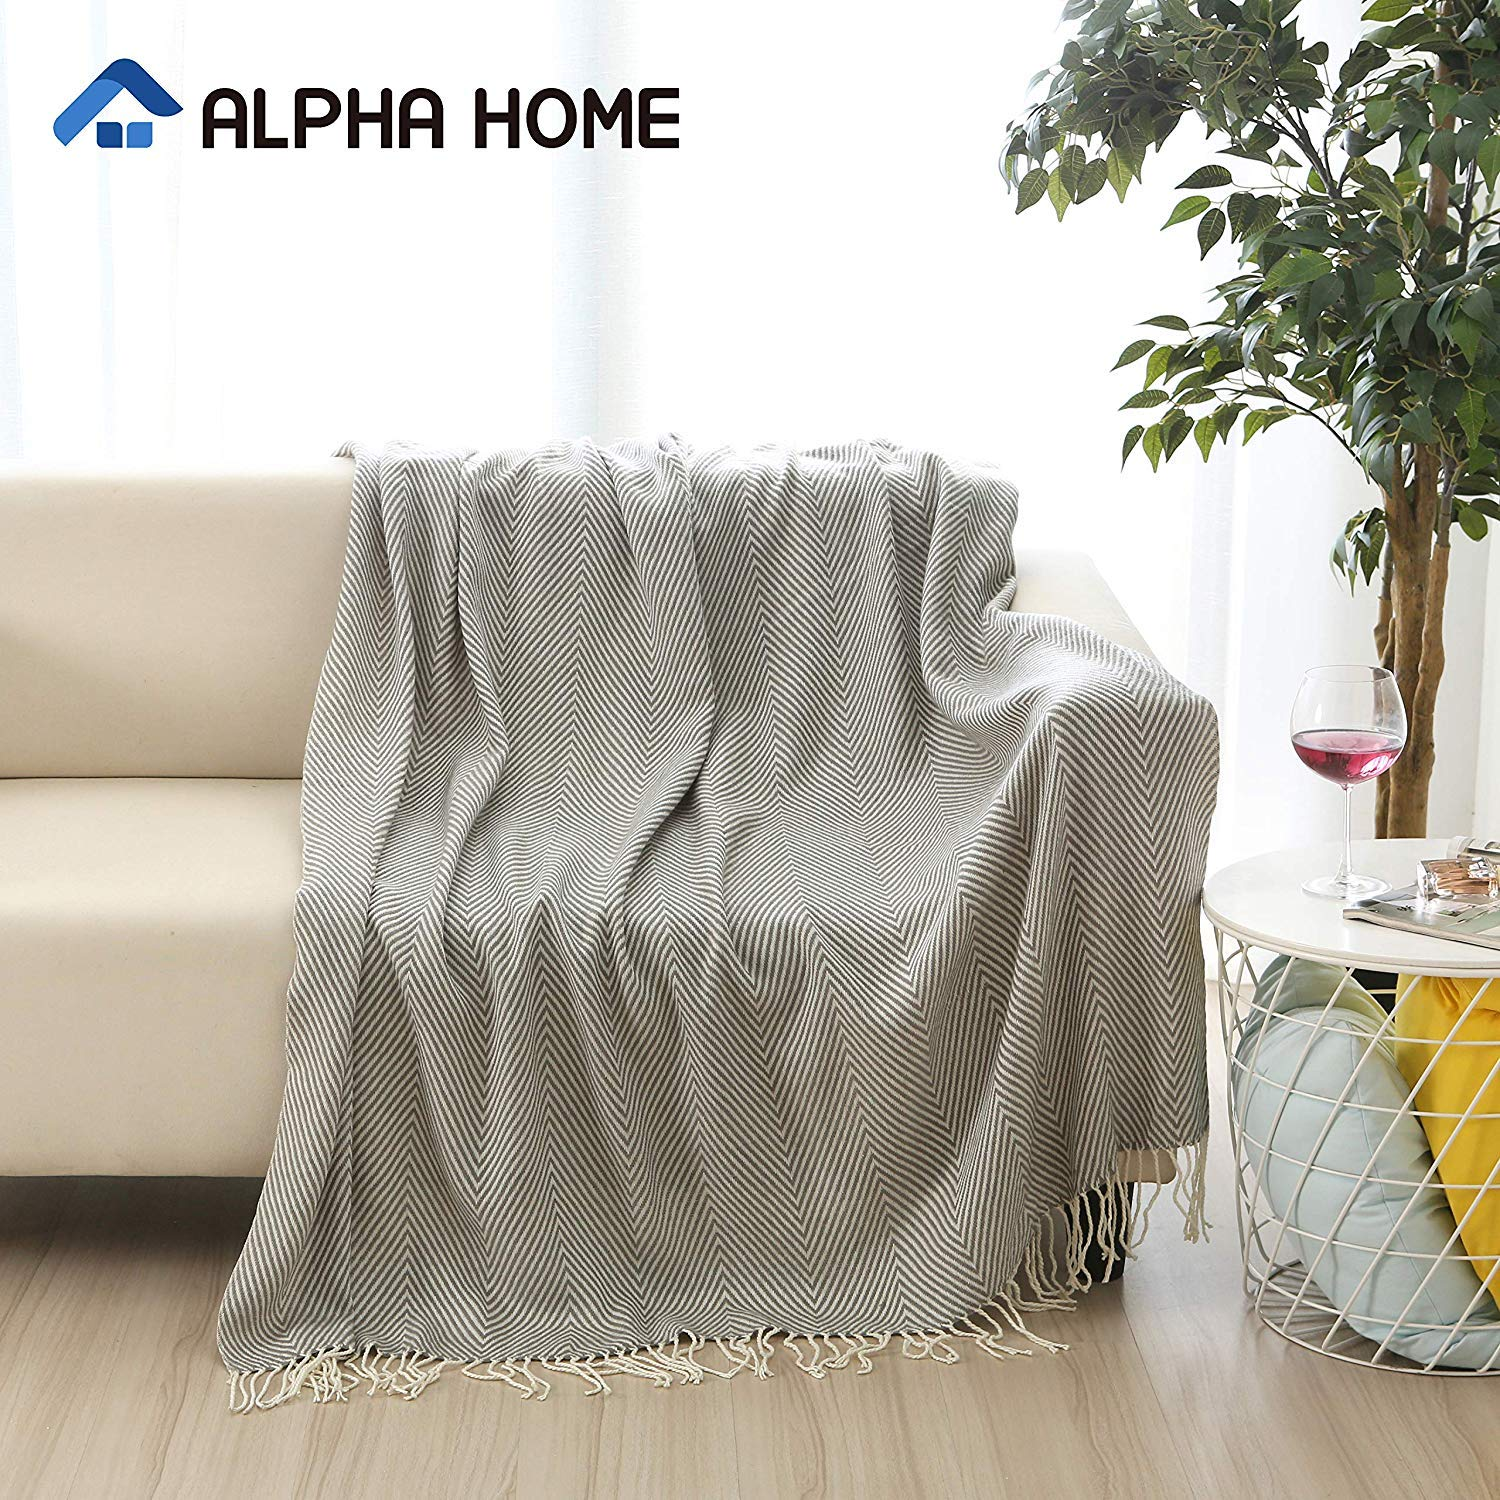 "ALPHA HOME Woven Throw Blanket Gray Chevron Blanket with Fringe for Couch Chair Bed Picnic Camping Travel - 50"" x 60"""